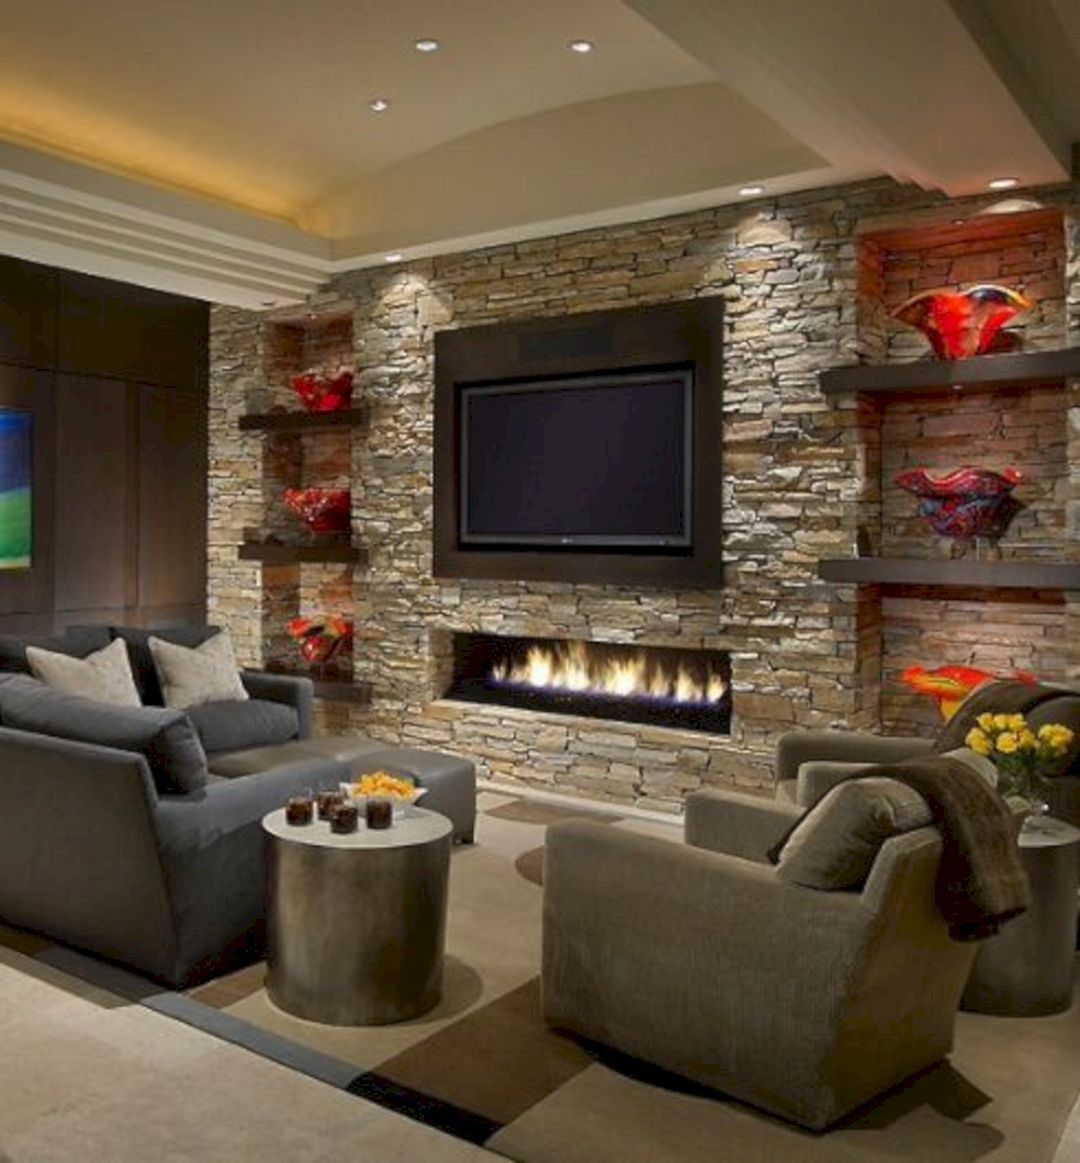 20 Fabulous Rock Wall Living Room Ideas To Amaze Your Guest